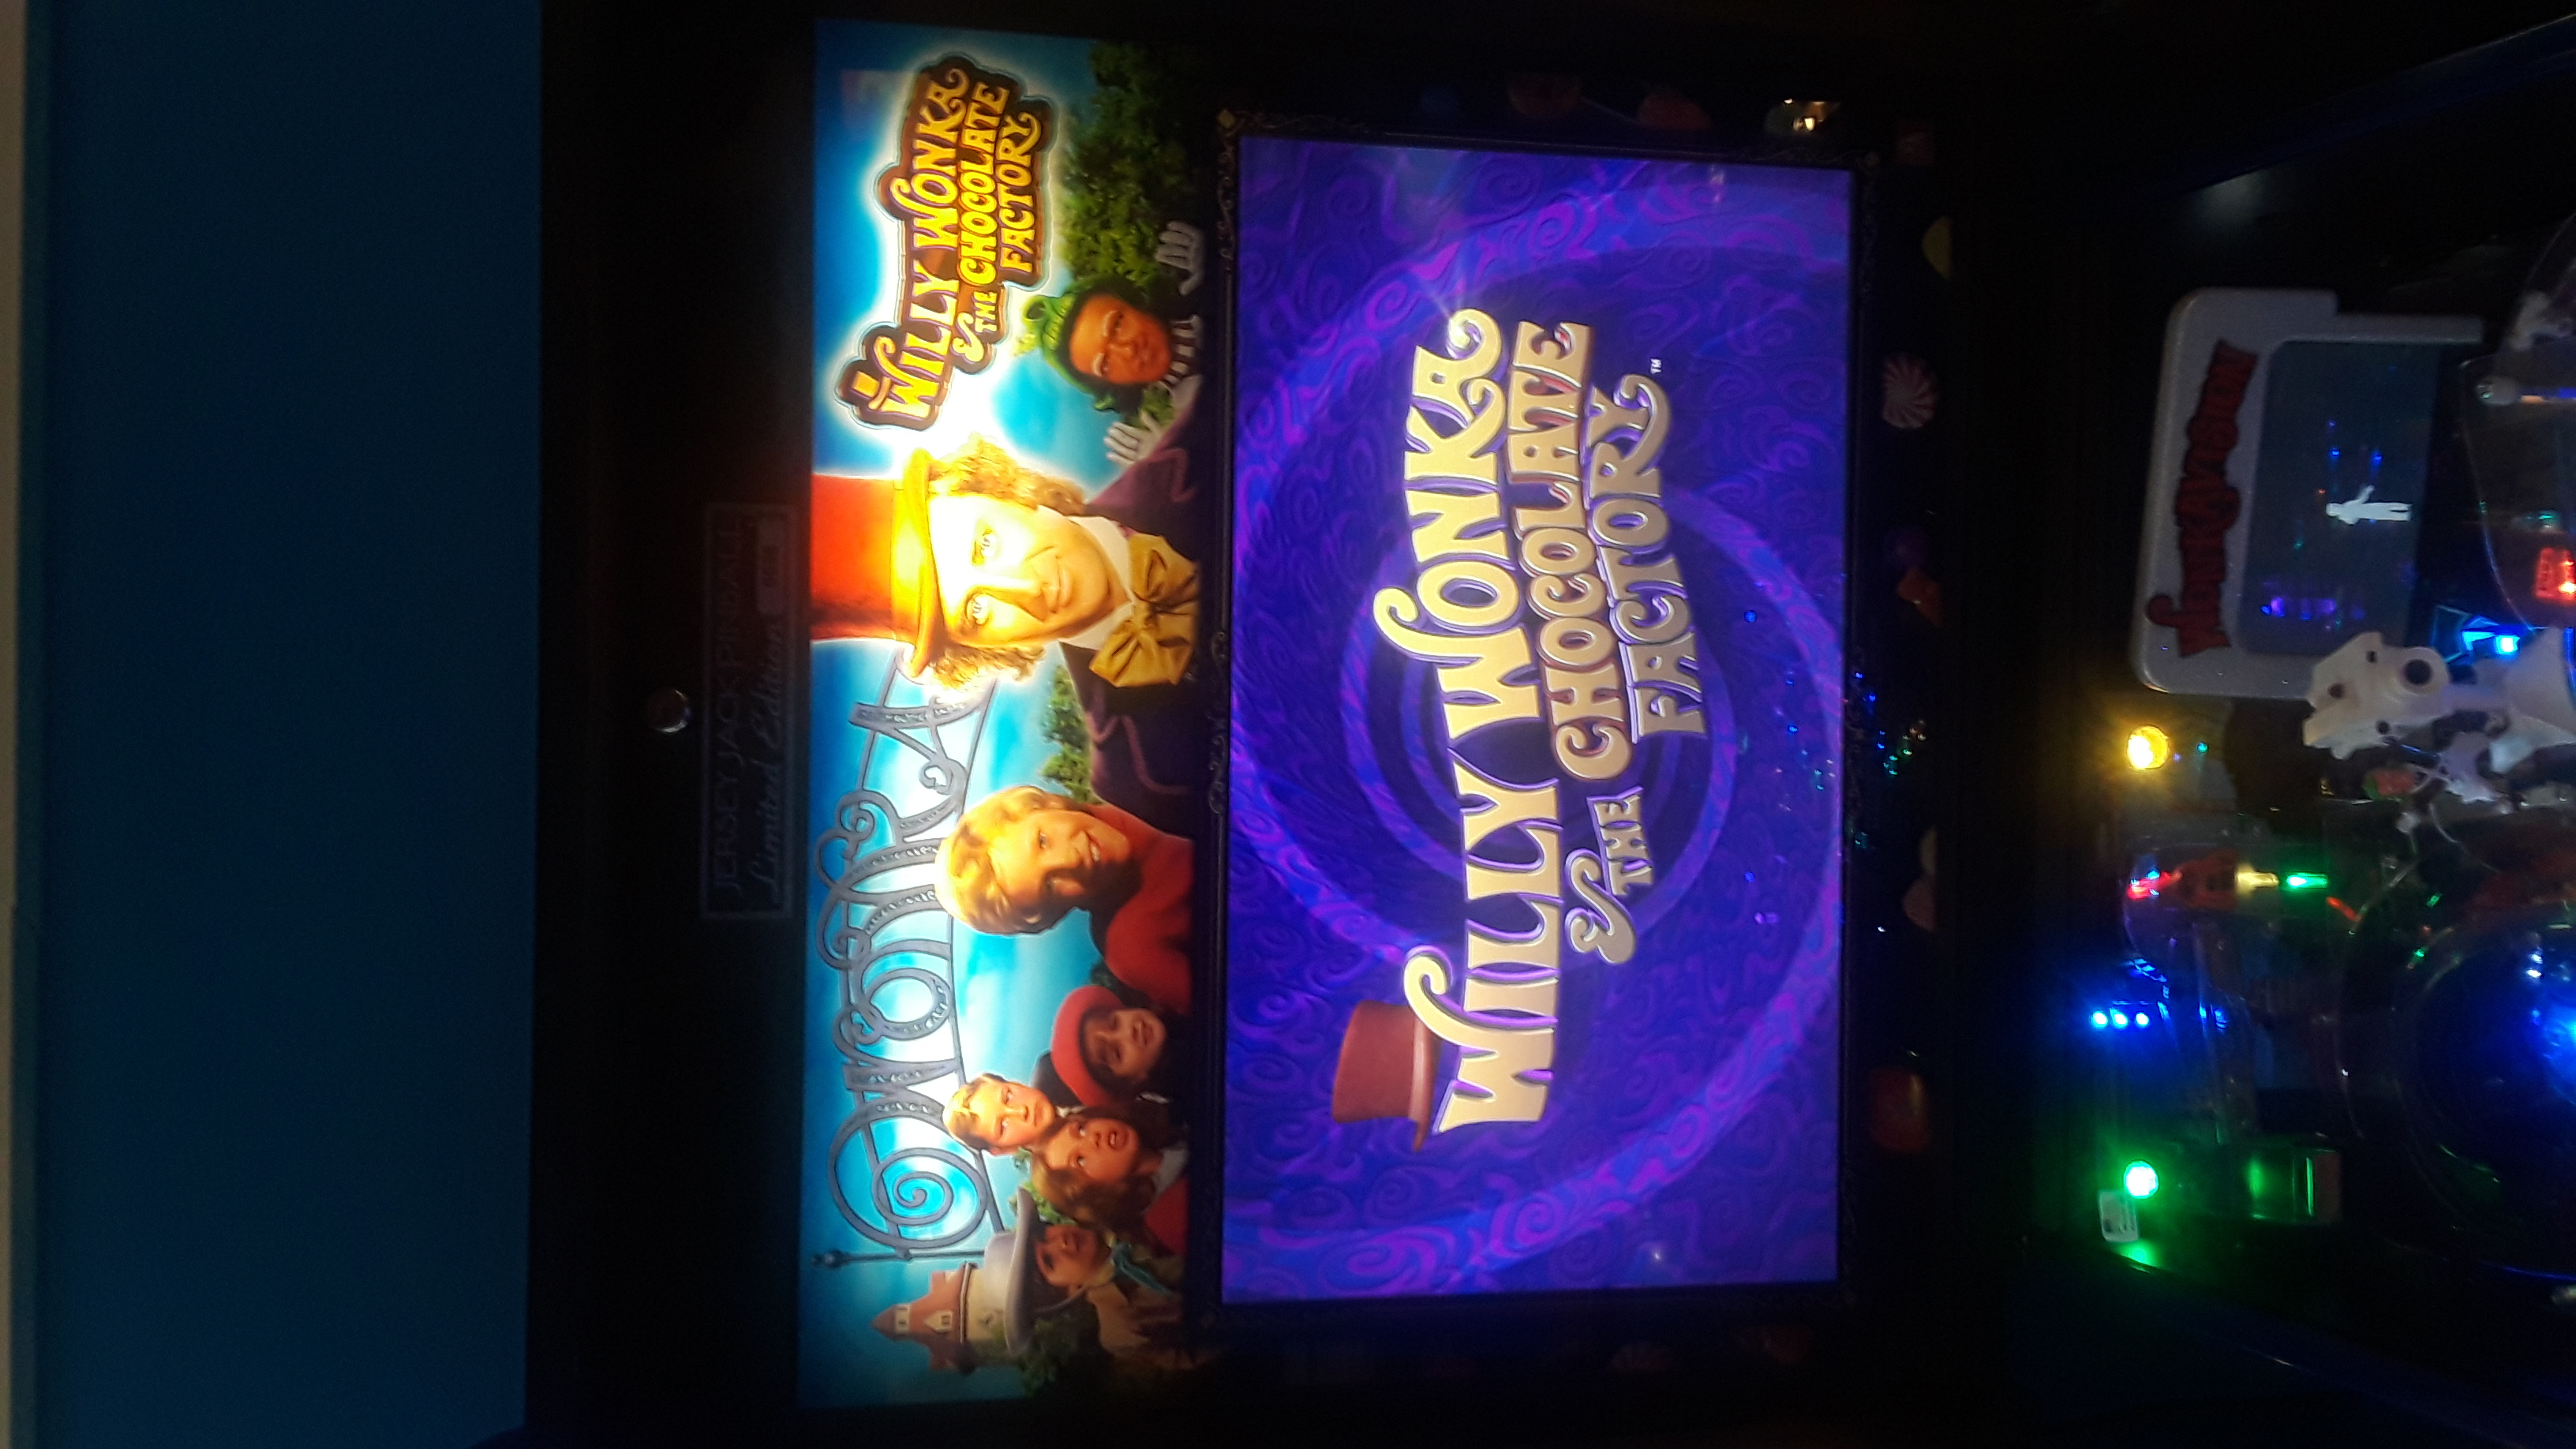 JML101582: Willy Wonka And The Chocolate Factory [LE] (Pinball: 3 Balls) 20,550 points on 2019-11-24 16:53:09